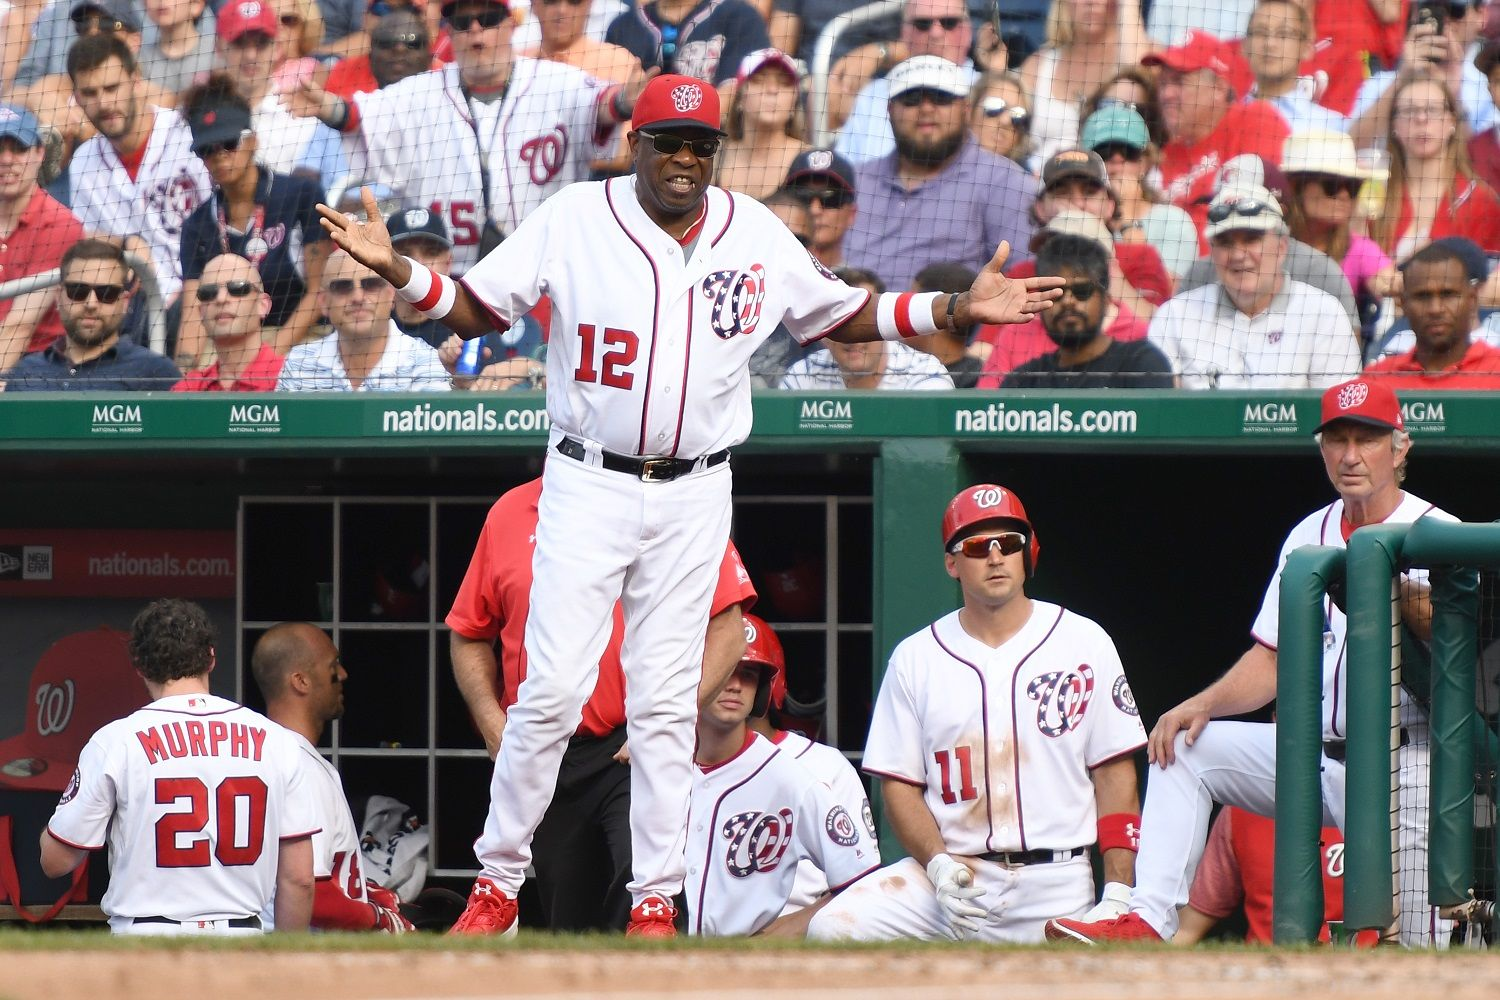 WASHINGTON, DC - JUNE 29:  manager Dusty Baker #12 of the Washington Nationals argues a pitch and is ejected in the sixth inning during a baseball game against the Chicago Cubs at Nationals Park on June 29, 2017 in Washington, DC.  (Photo by Mitchell Layton/Getty Images)